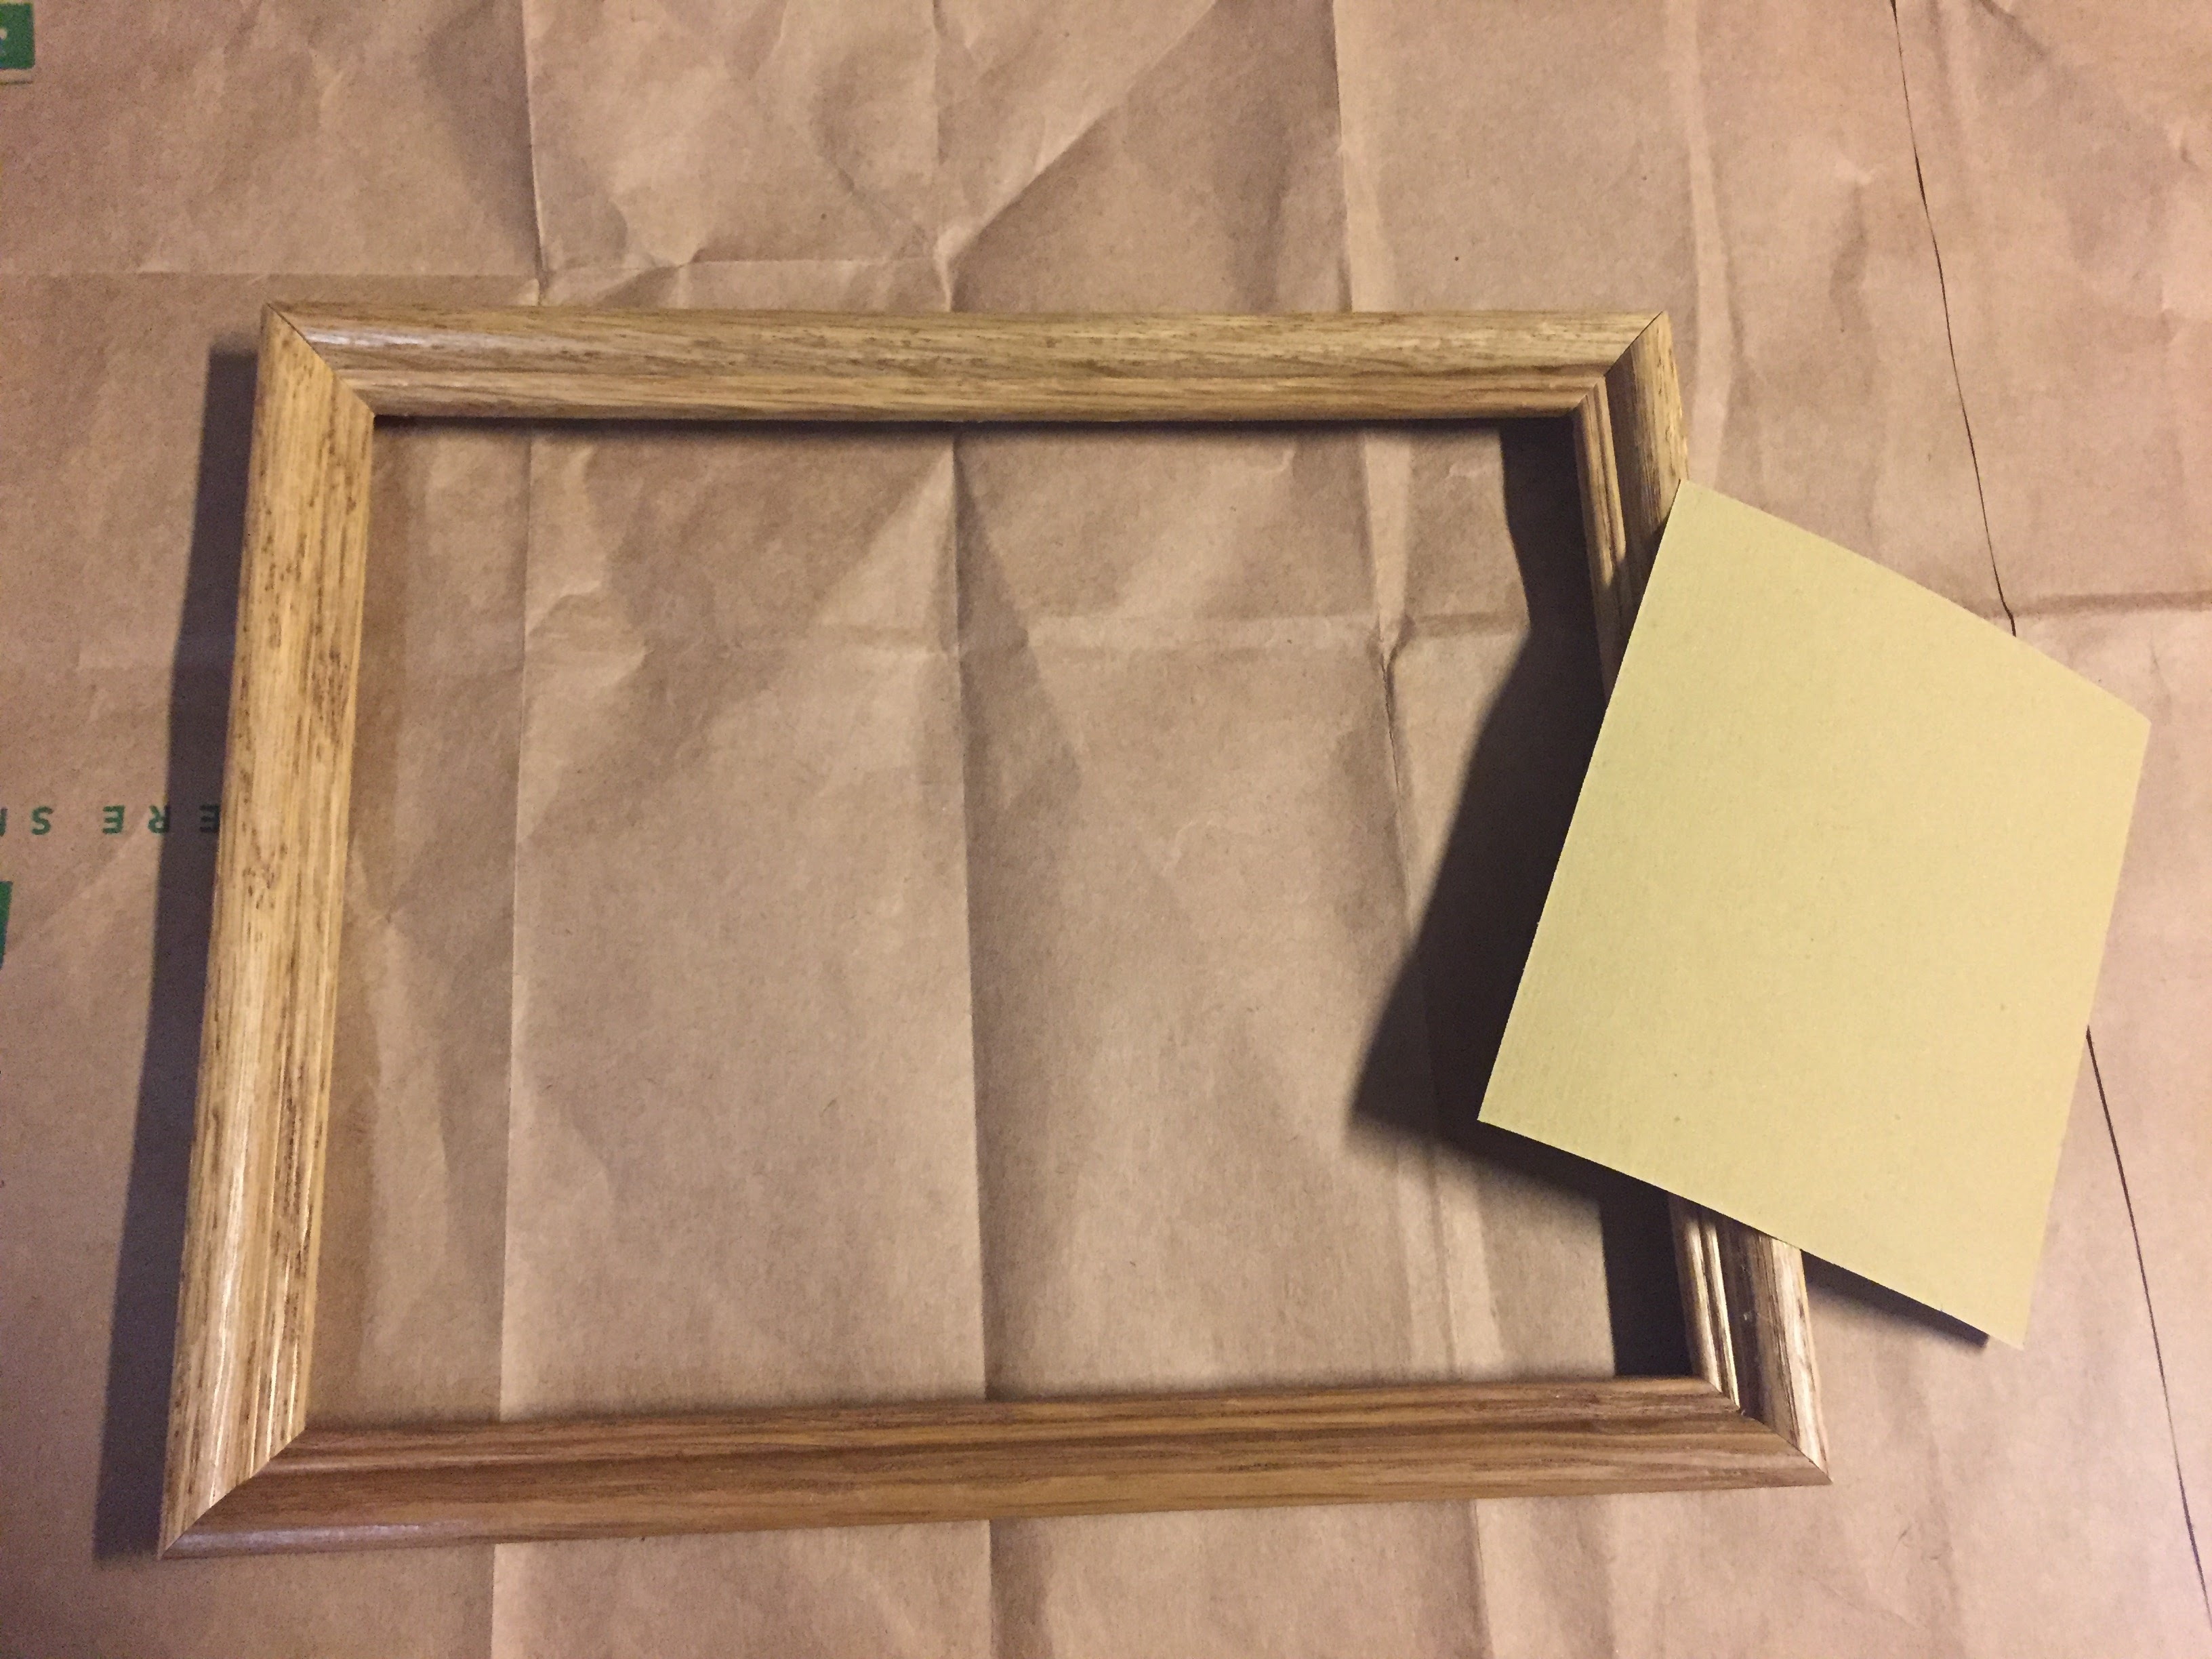 3 Step DIY Distressed Picture Frame | DIY rustic frame | DIY coastal frame | DIY | Vintage | shabby chic | gallery wall | wedding | home decor | project | recycle | reuse | wedding DIY | picture frame | Distressed frame | DIY Distressed frame |